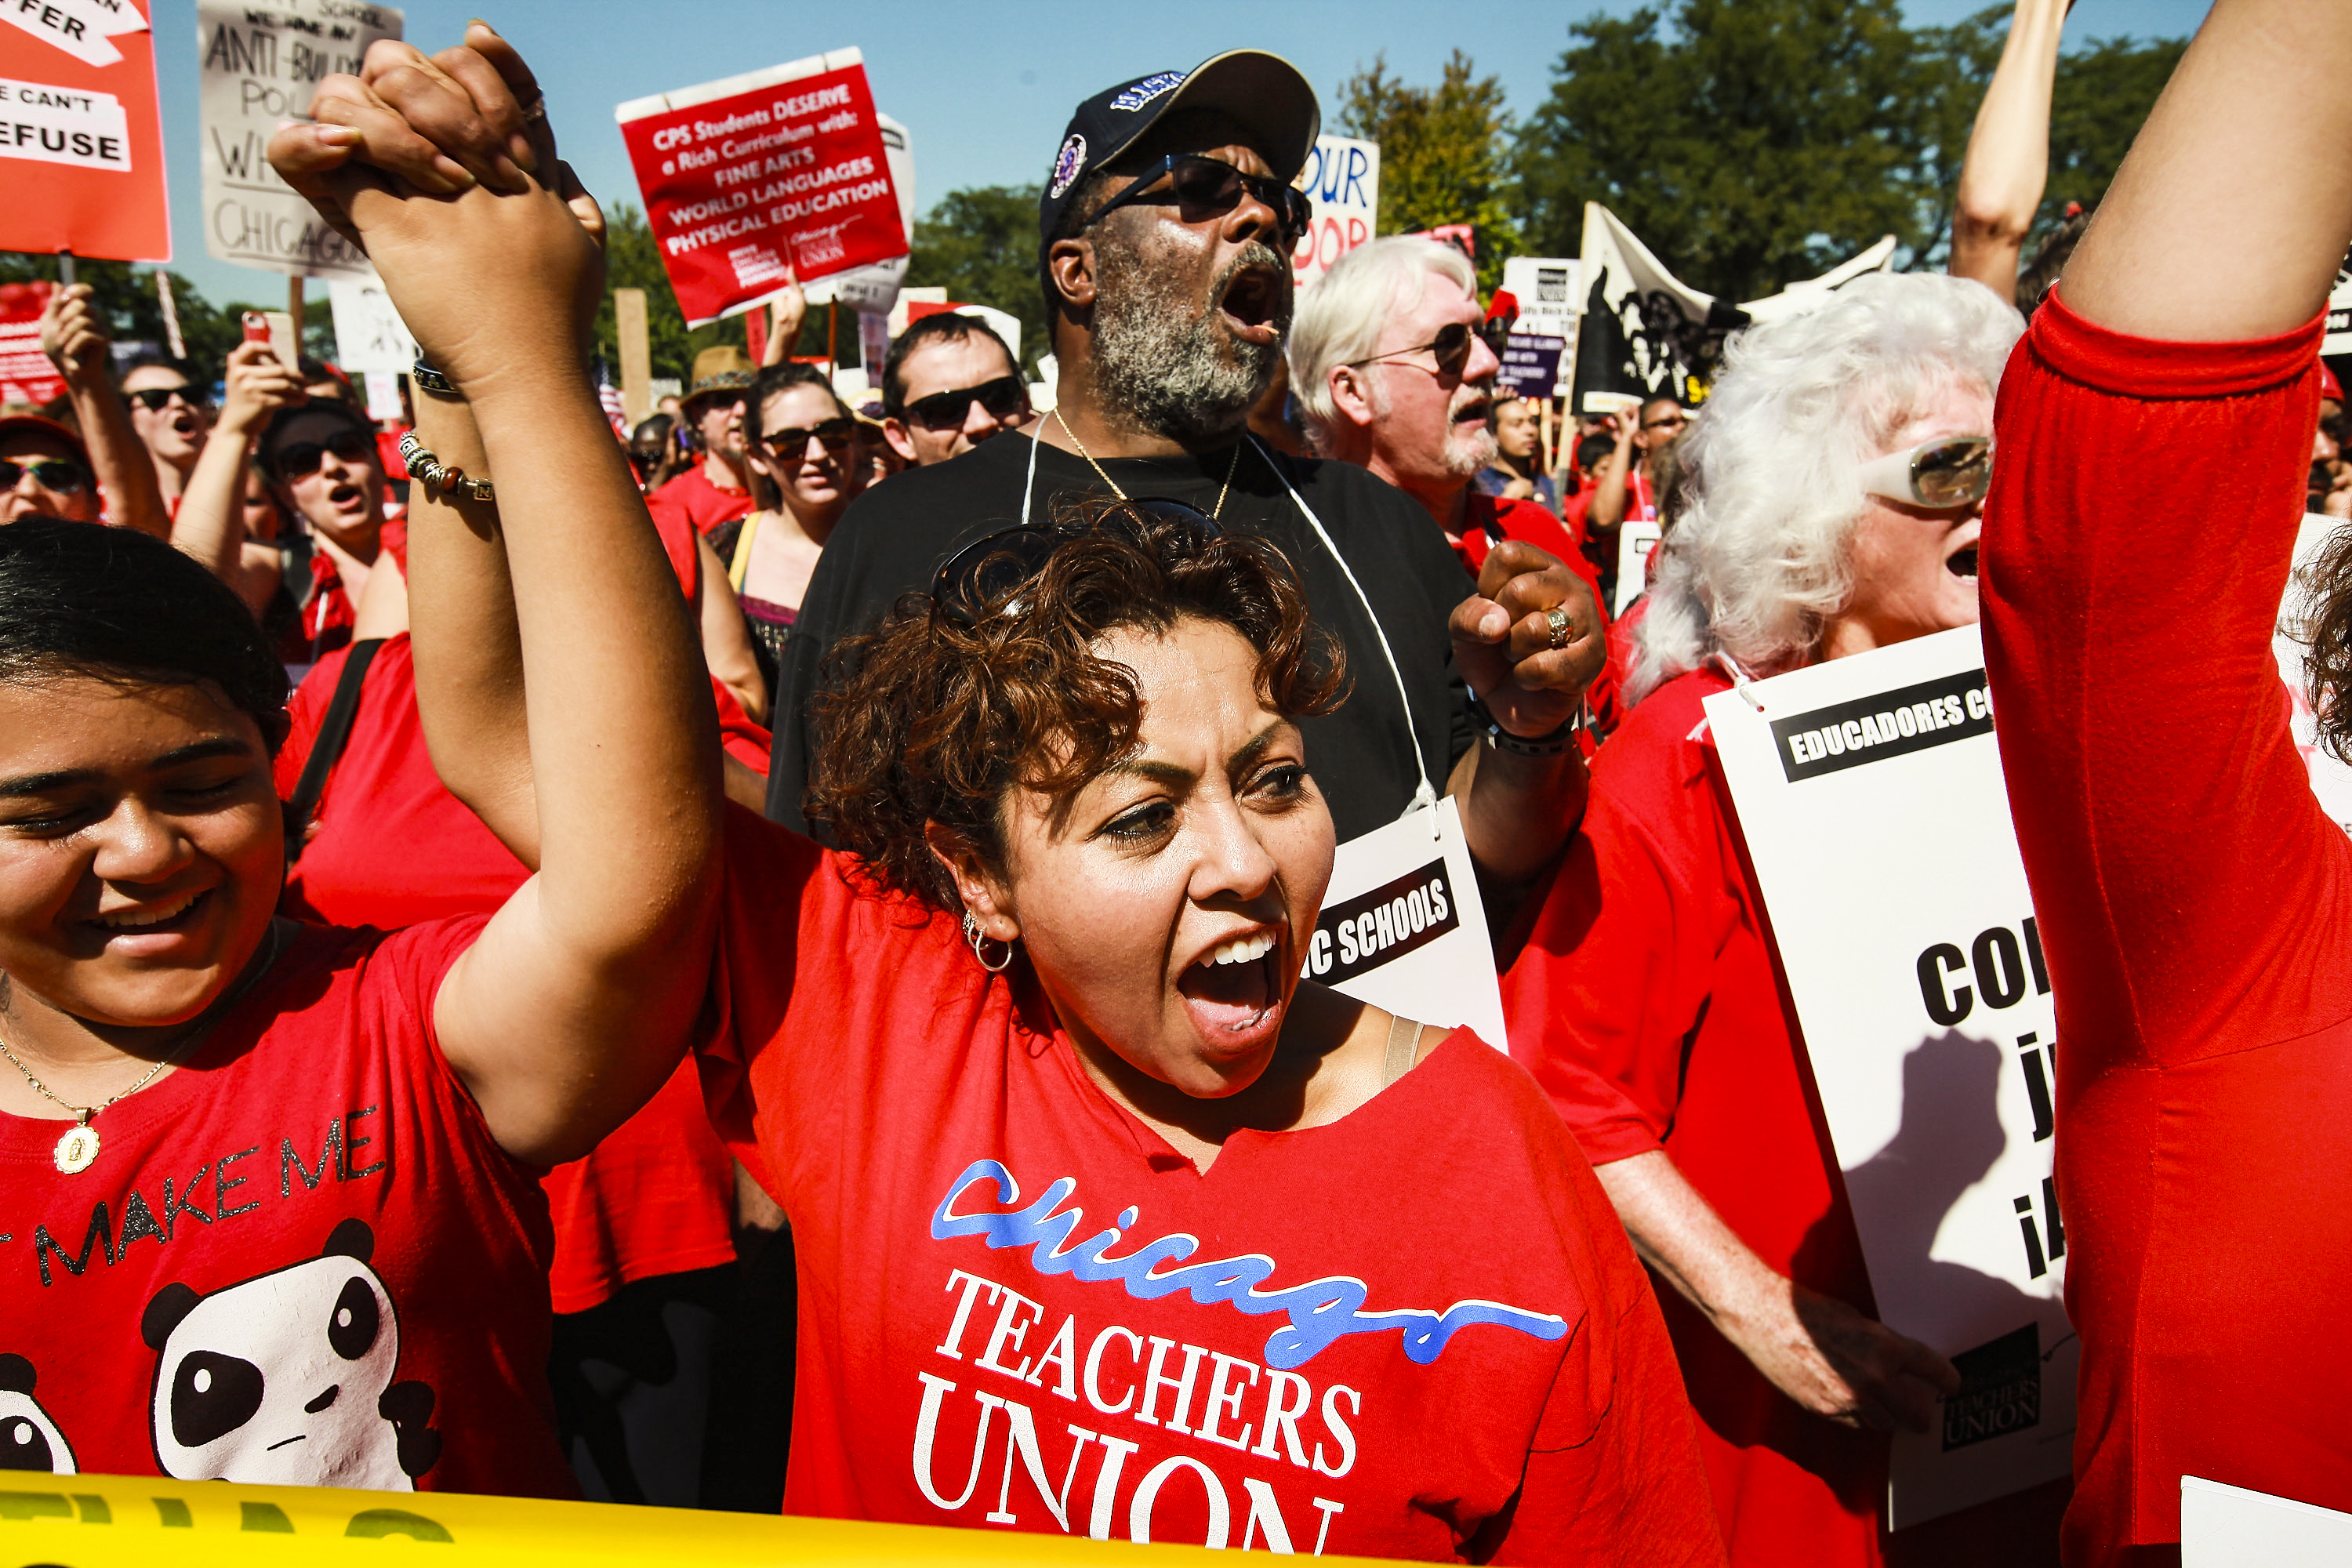 The strike that brought teachers unions back from the dead